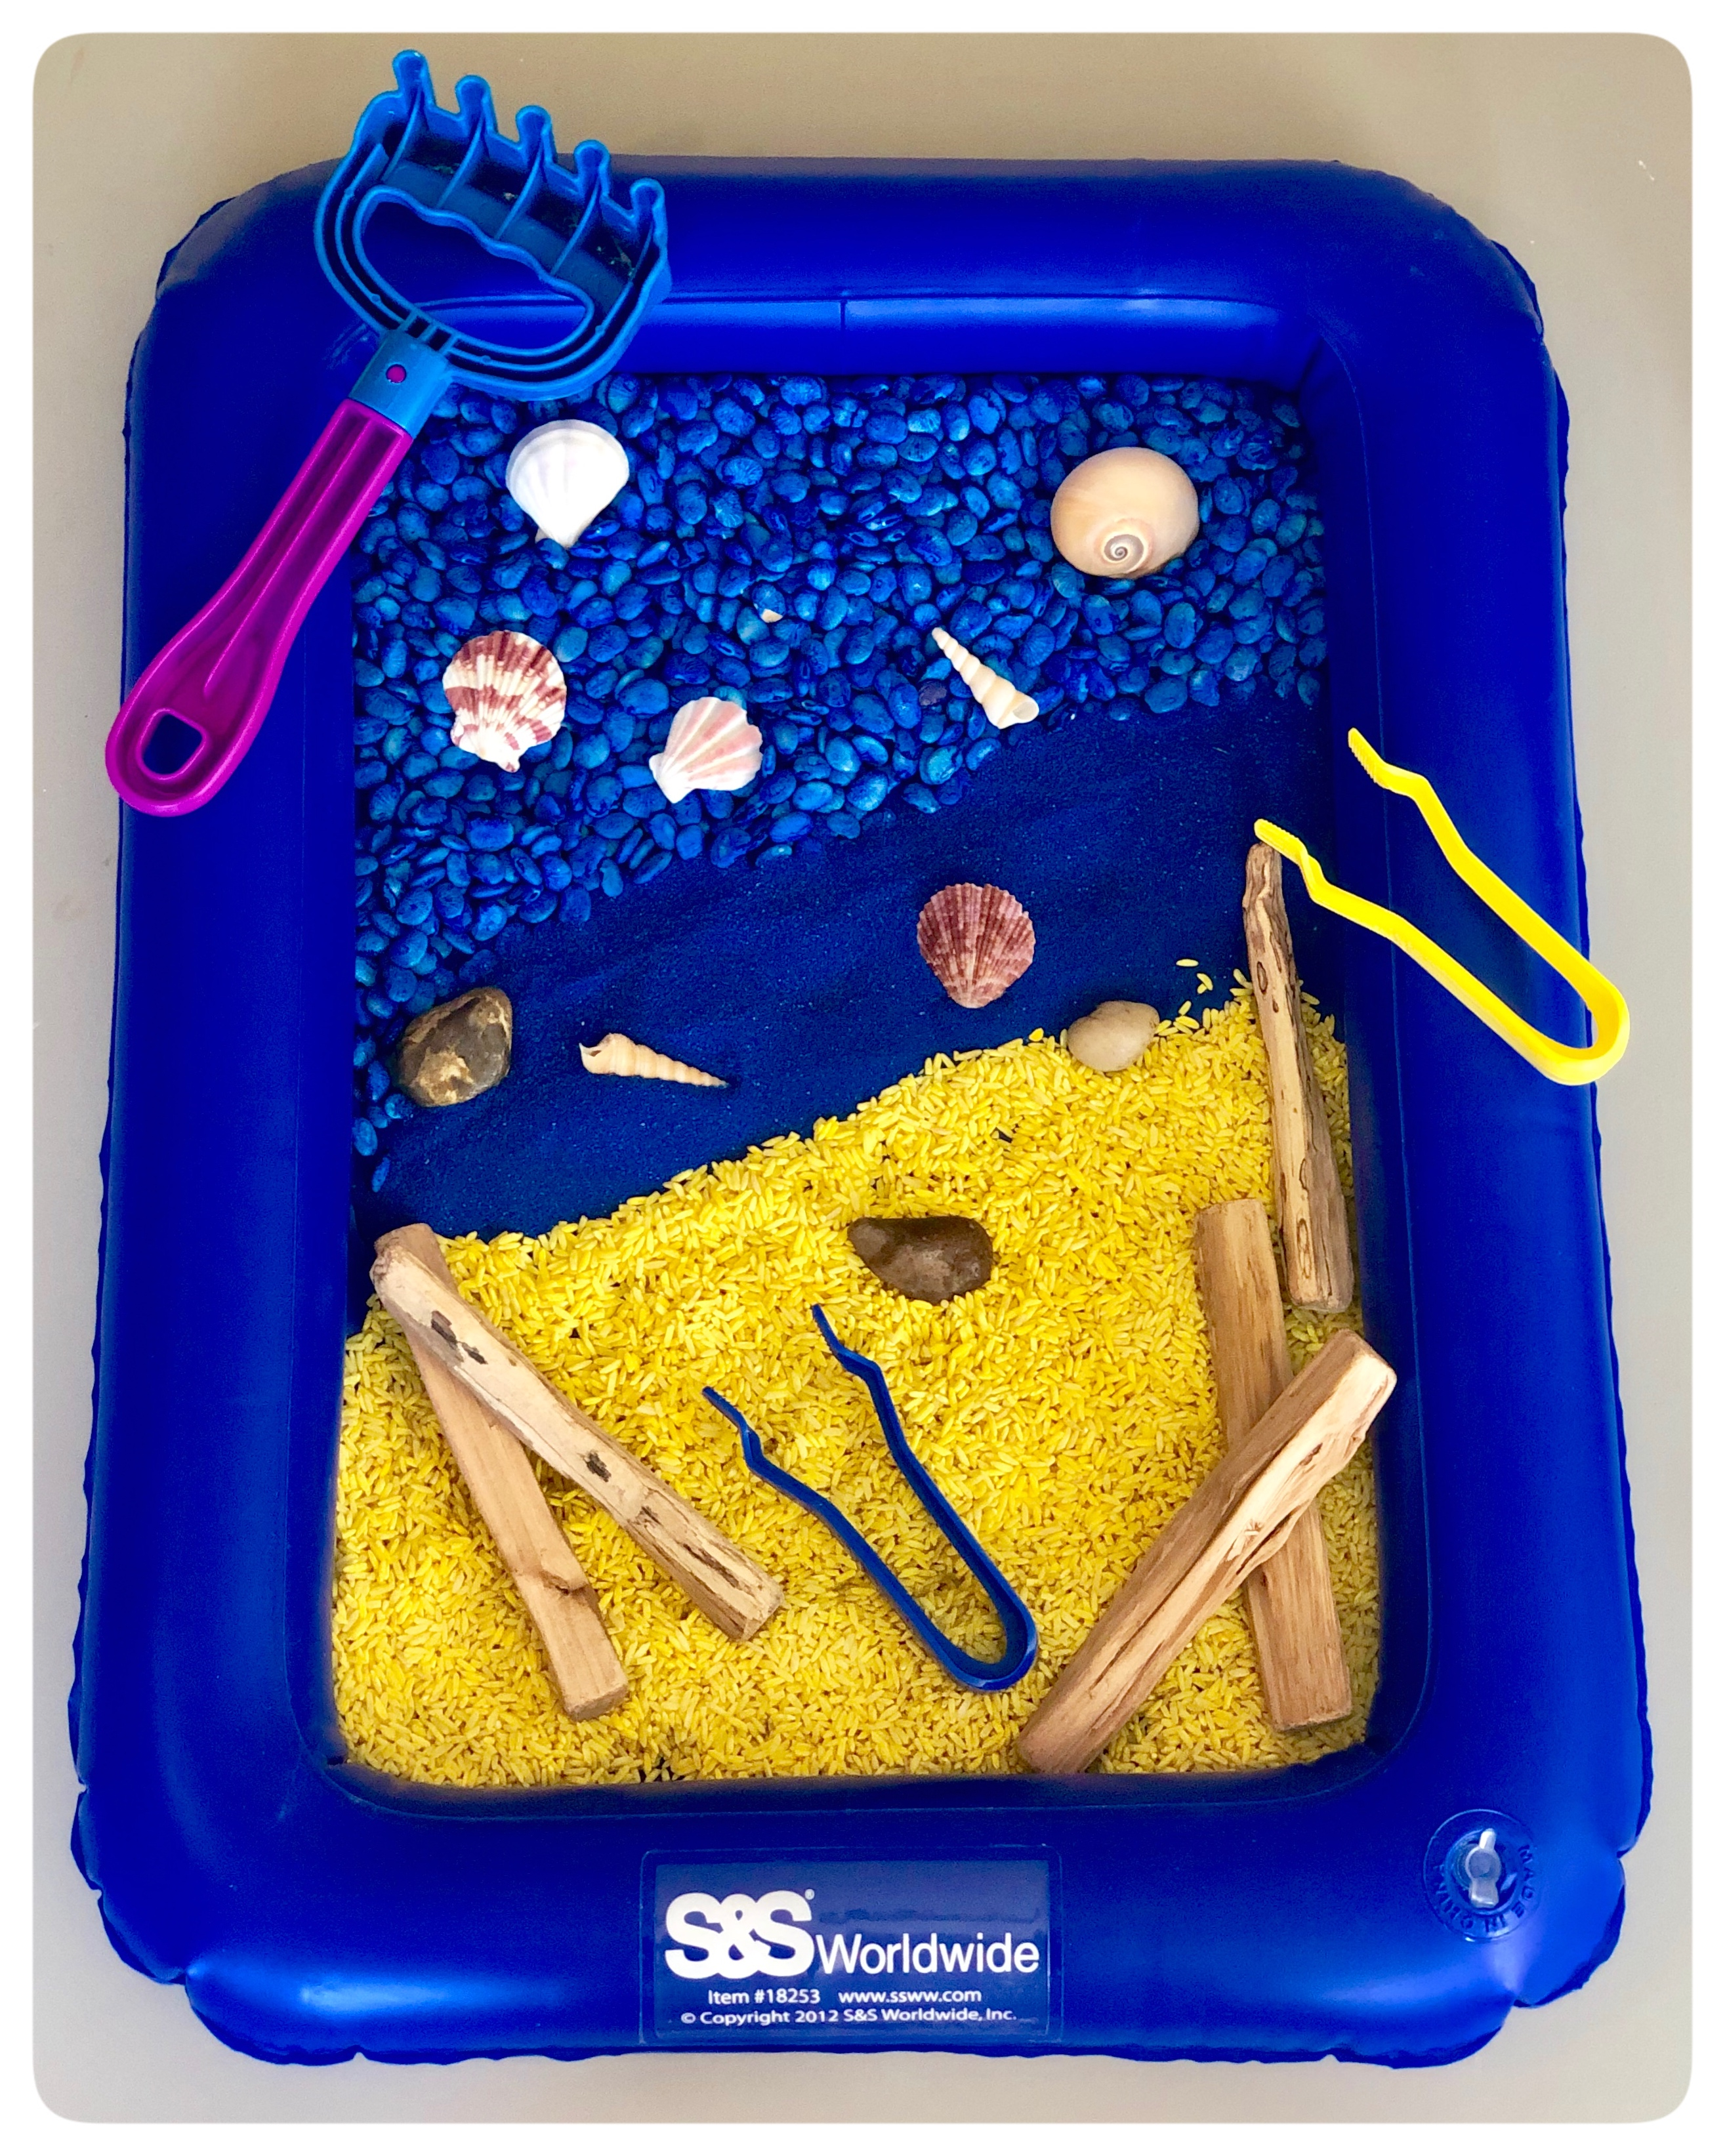 🌊 Ocean Sensory Bin 🐚 .Looking for a fun and simple activity for your kiddos this summer? Create an ocean inspired sensory bin 🐚 Did you know you can dye food you have right now in your kitchen?